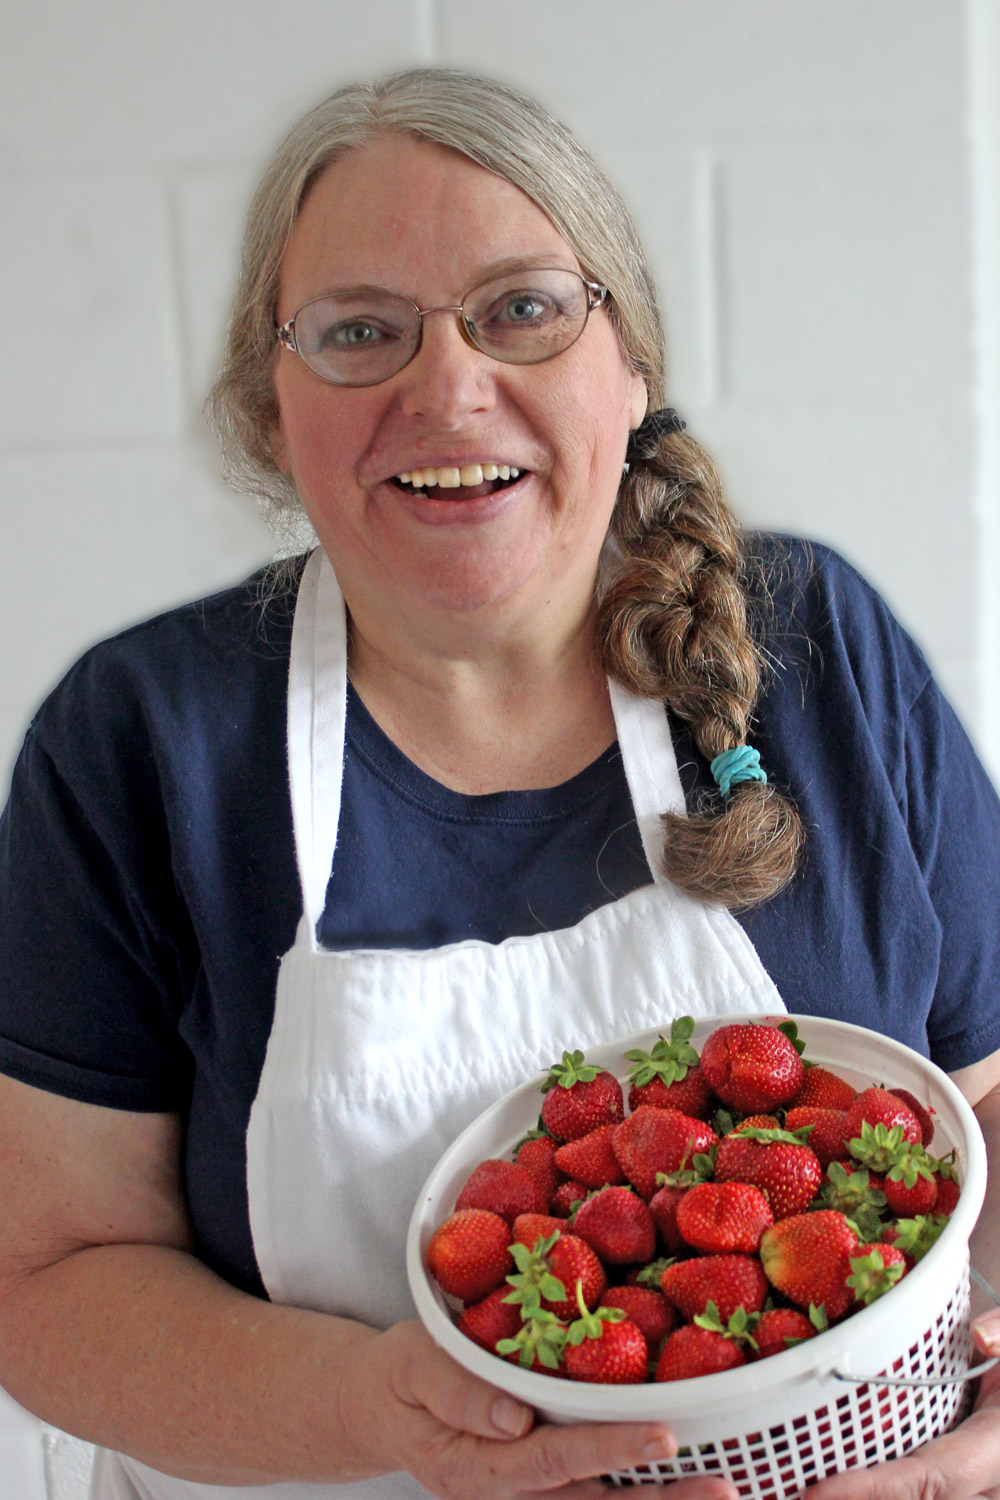 Joyce Pinson of Friends Drift Inn wearing bib apron and carrying bucket of fresh strawberries